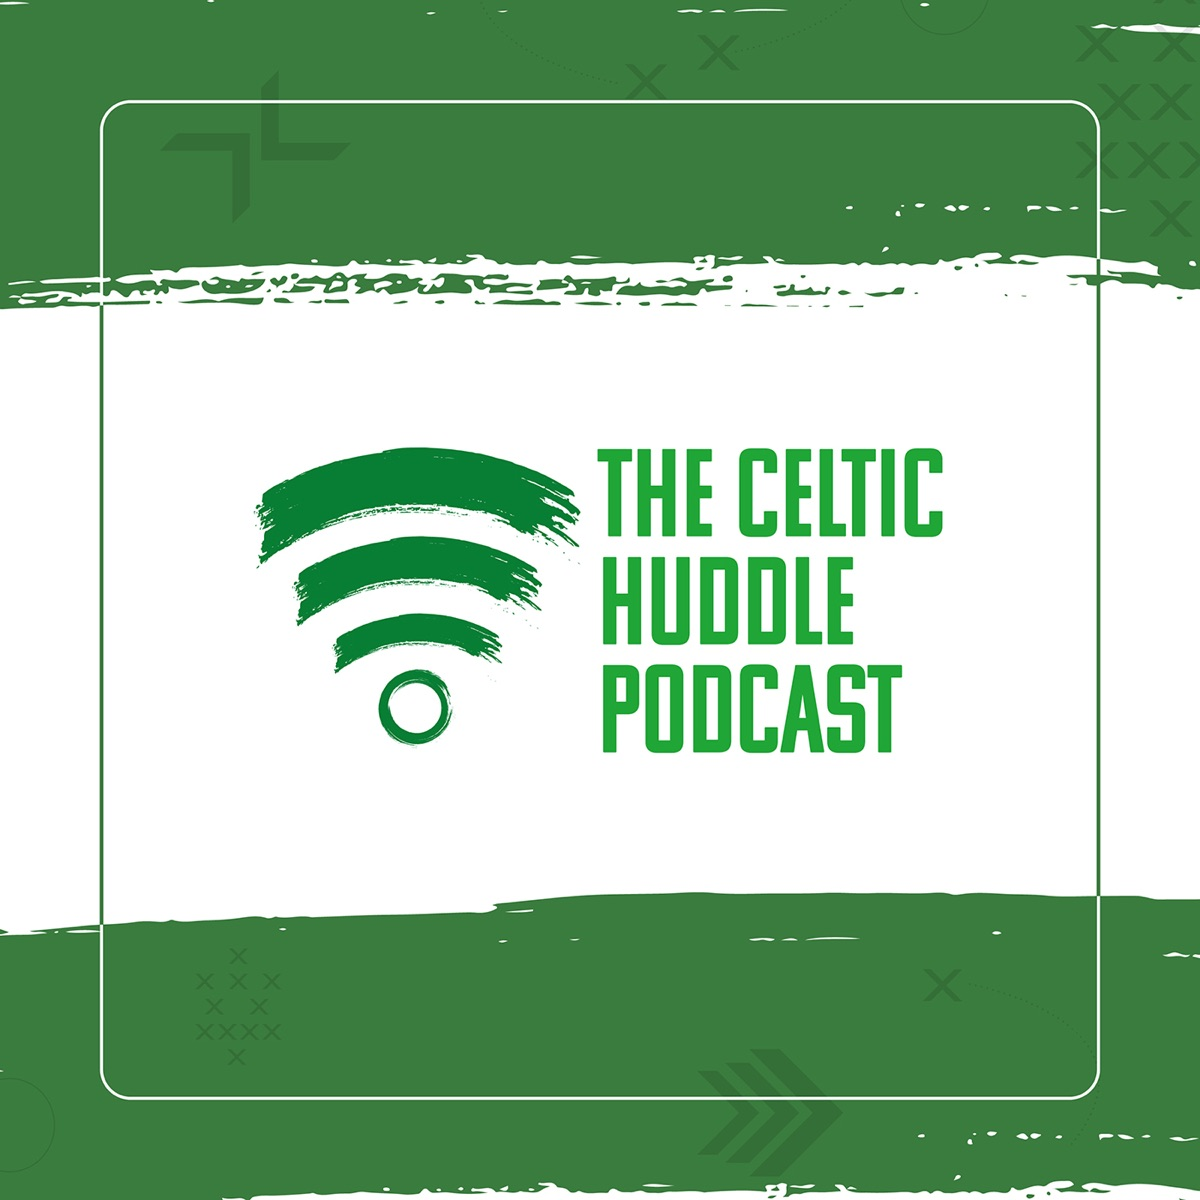 Episode 9 - The Celtic Huddle in association with 1st Star